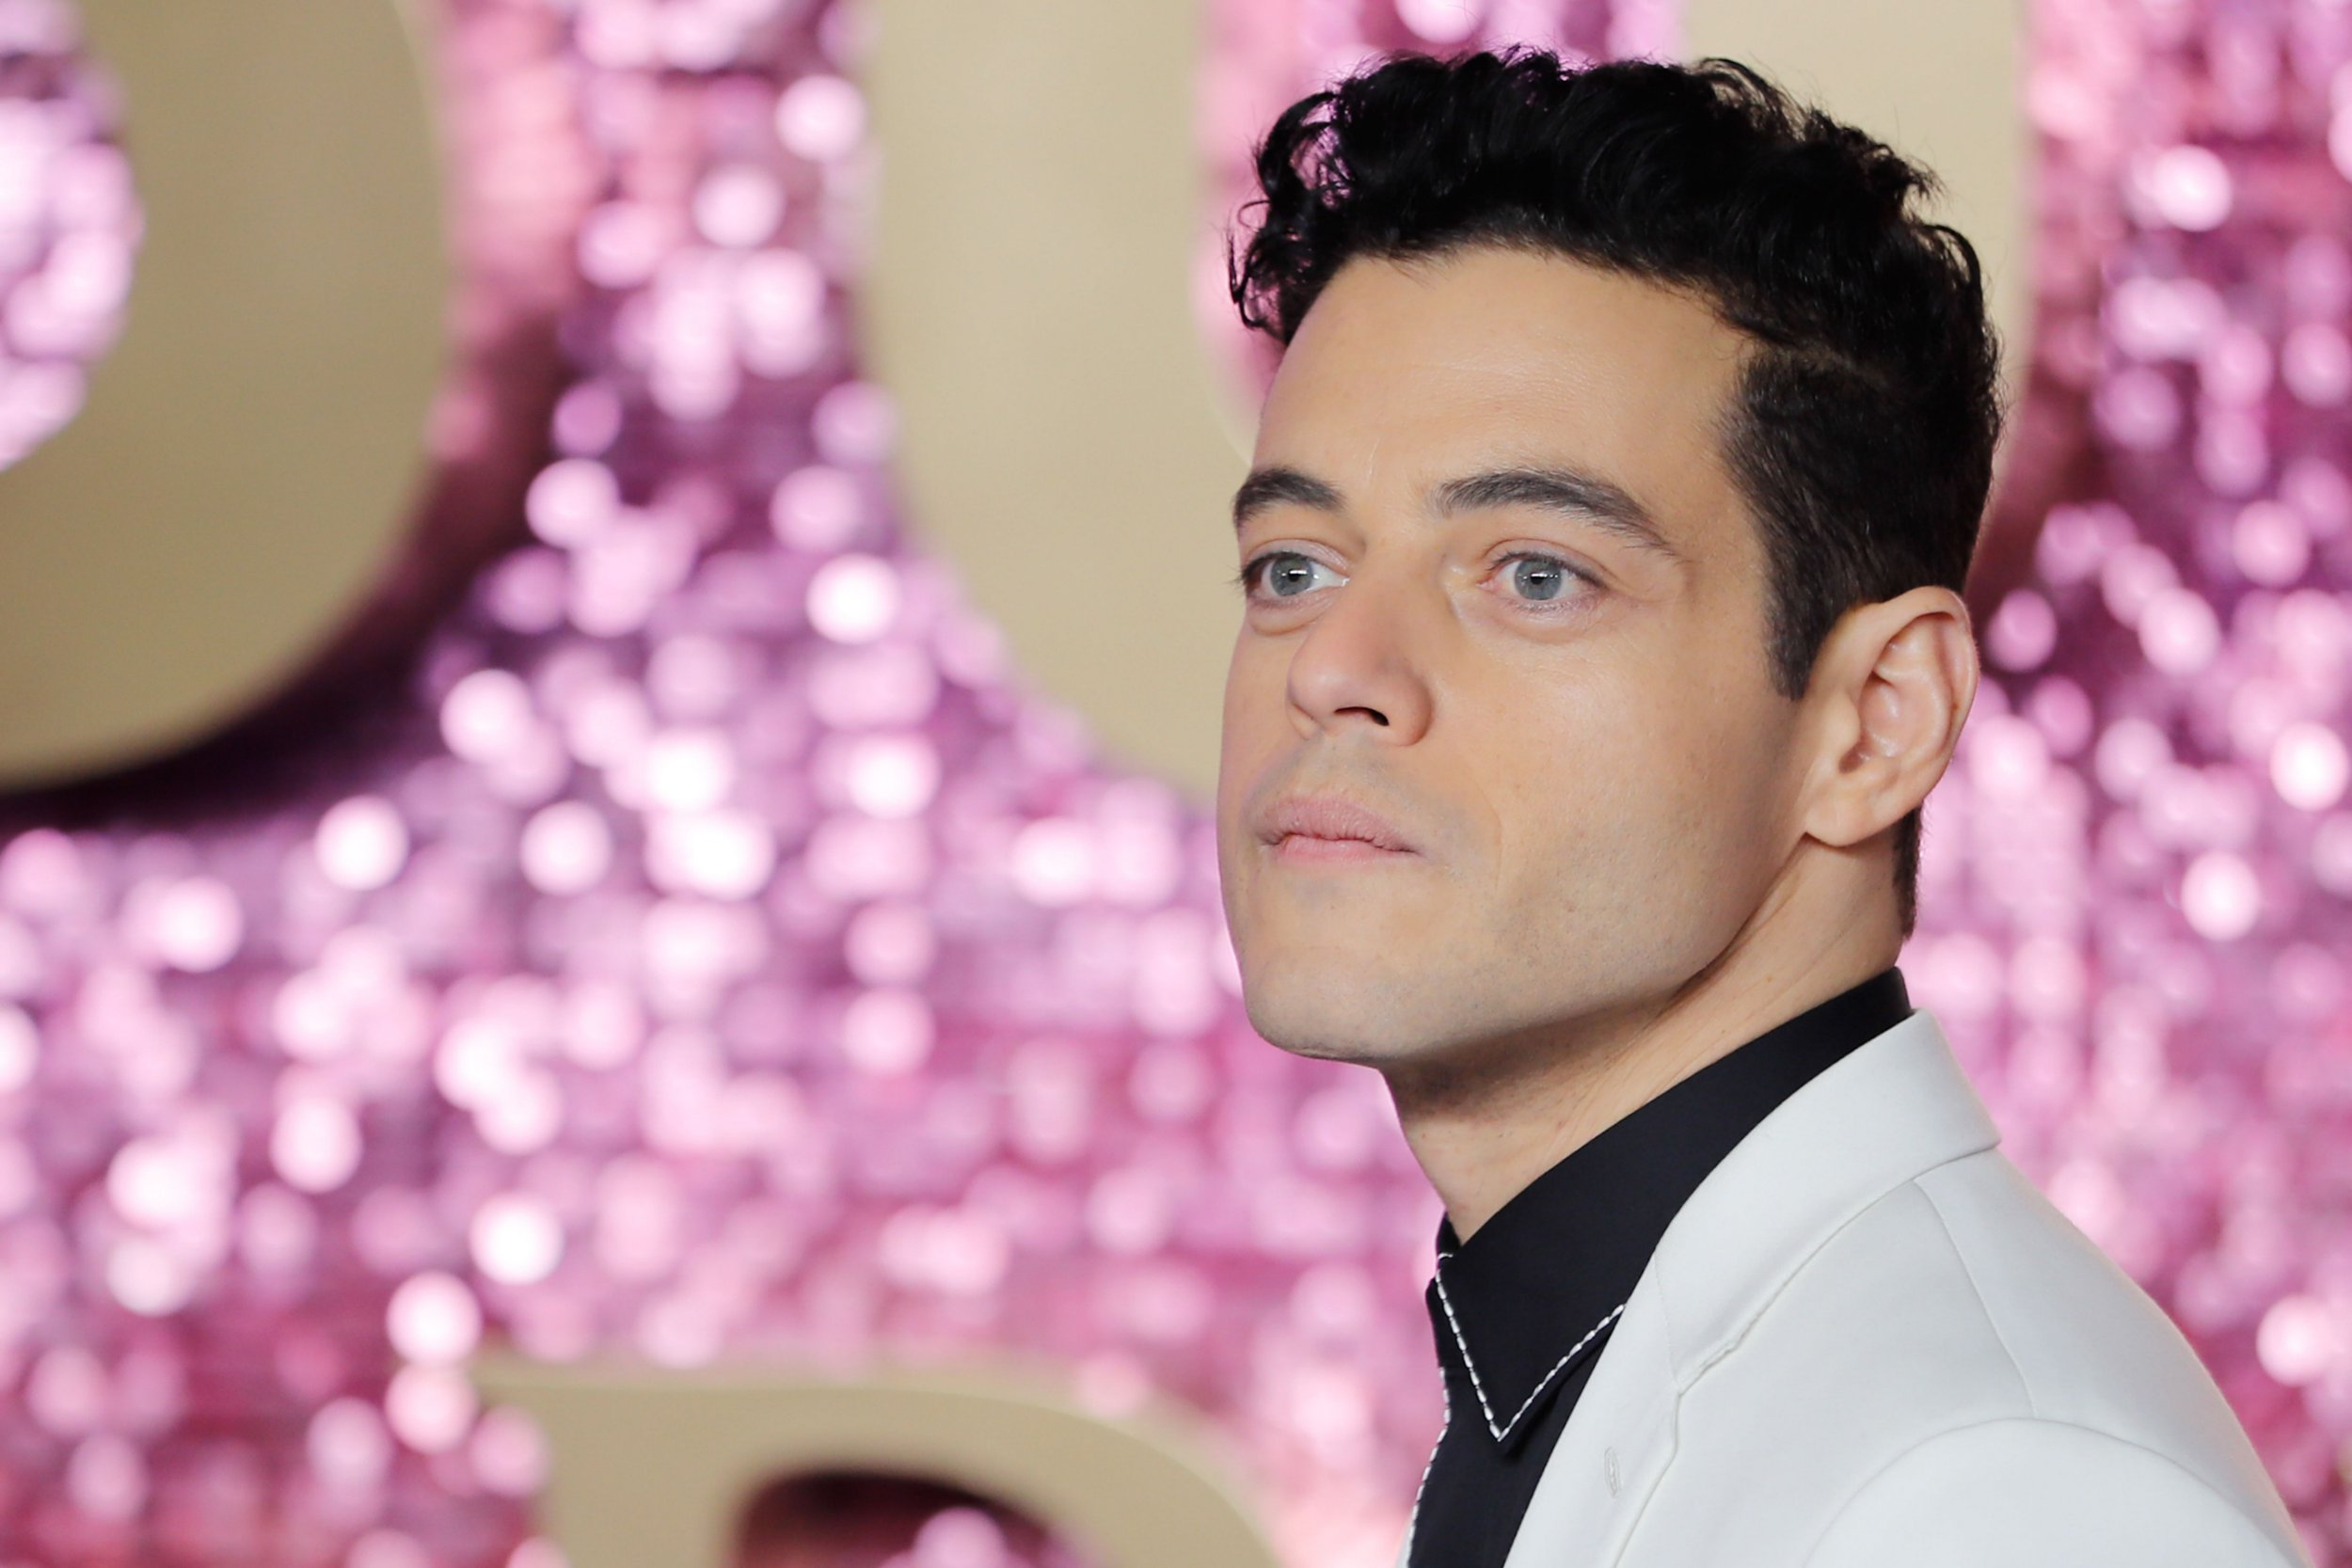 US actor Rami Malek poses on the red carpet arriving for the world premiere of the film 'Bohemian Rhapsody' at Wembley Arena in north London on October 23, 2018. (Photo by Tolga AKMEN / AFP)TOLGA AKMEN/AFP/Getty Images